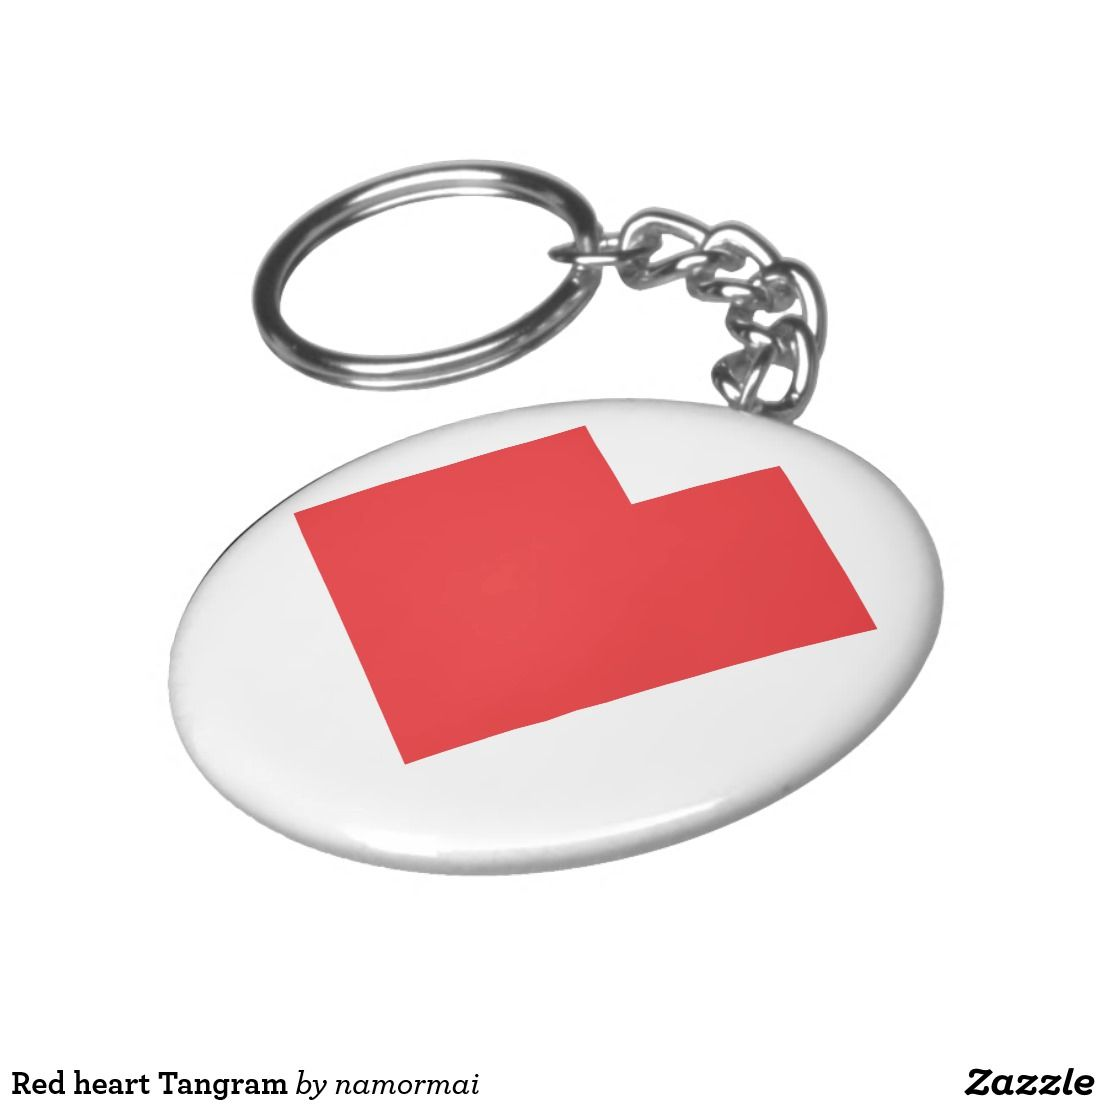 Red heart tangram keychain